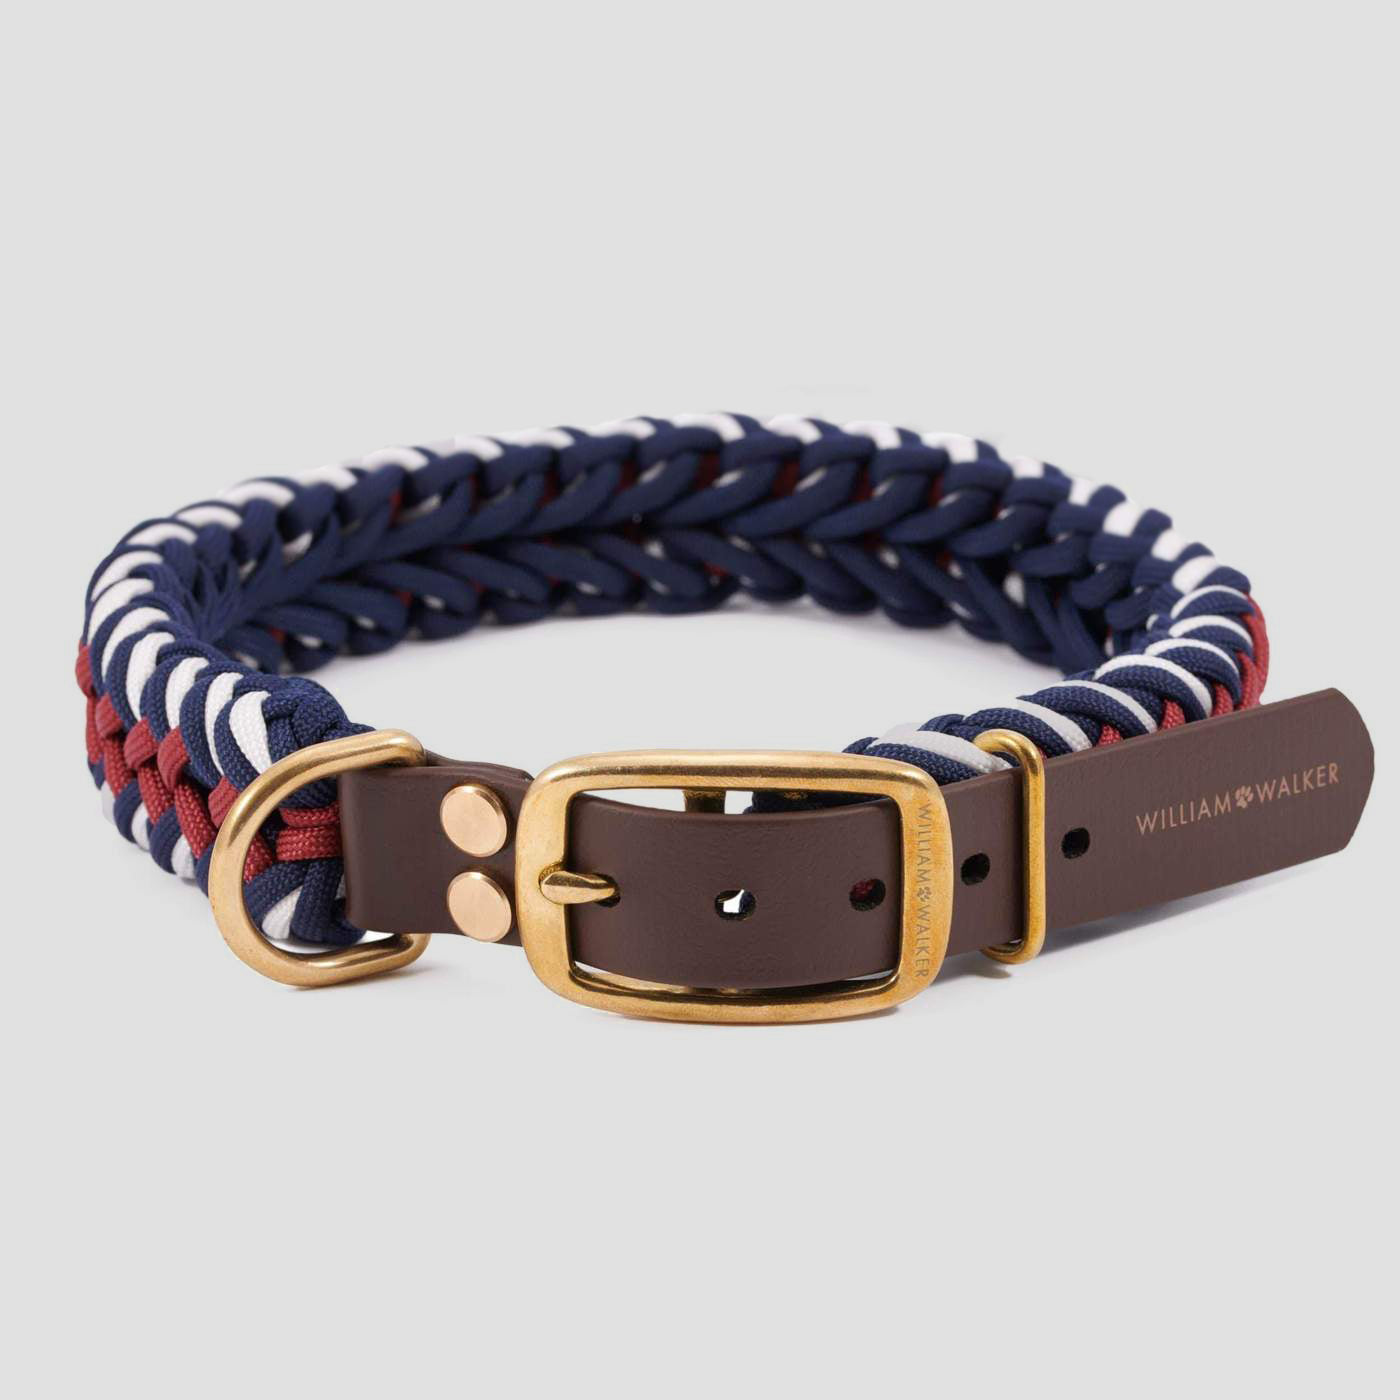 William Walker Dog Collar - Royal